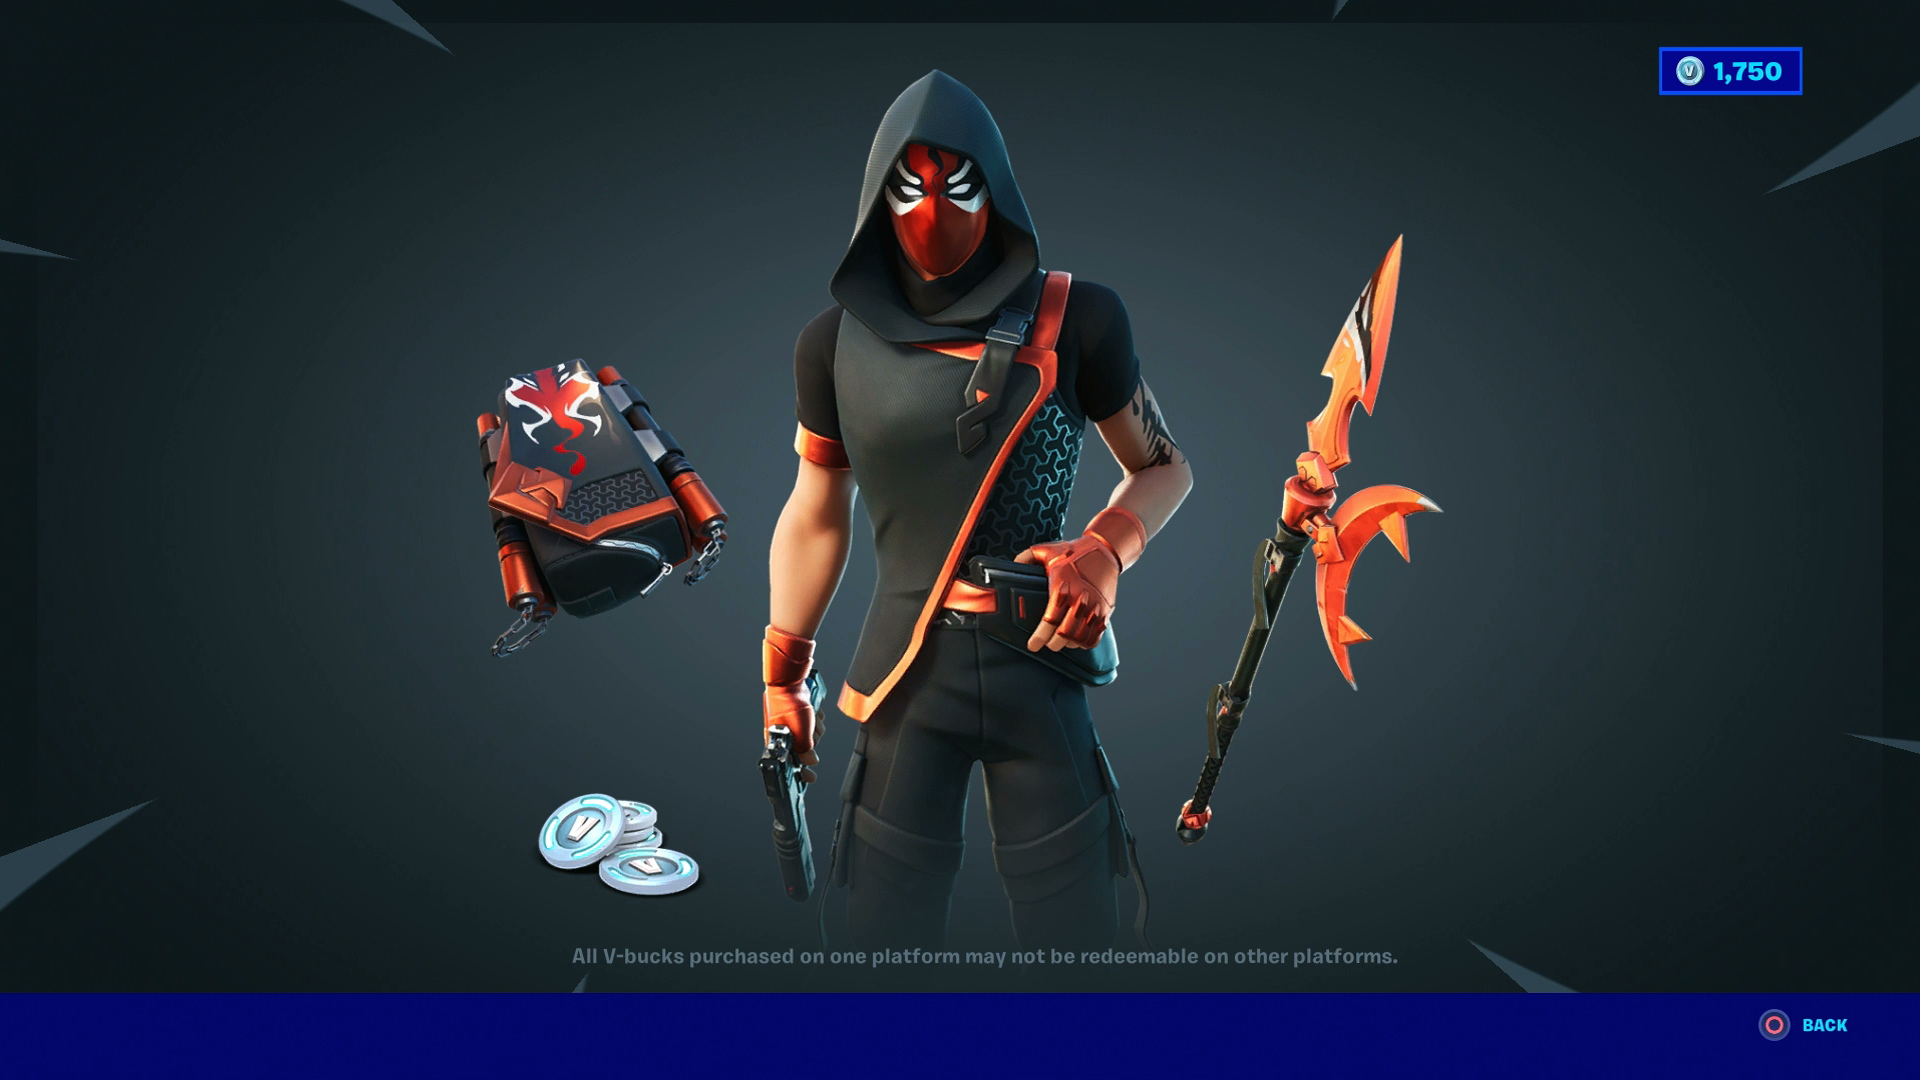 Fortnite Starter Pack The Fortnite Street Serpent Pack Is The Best Deal You Can Get In The Game Gamesradar